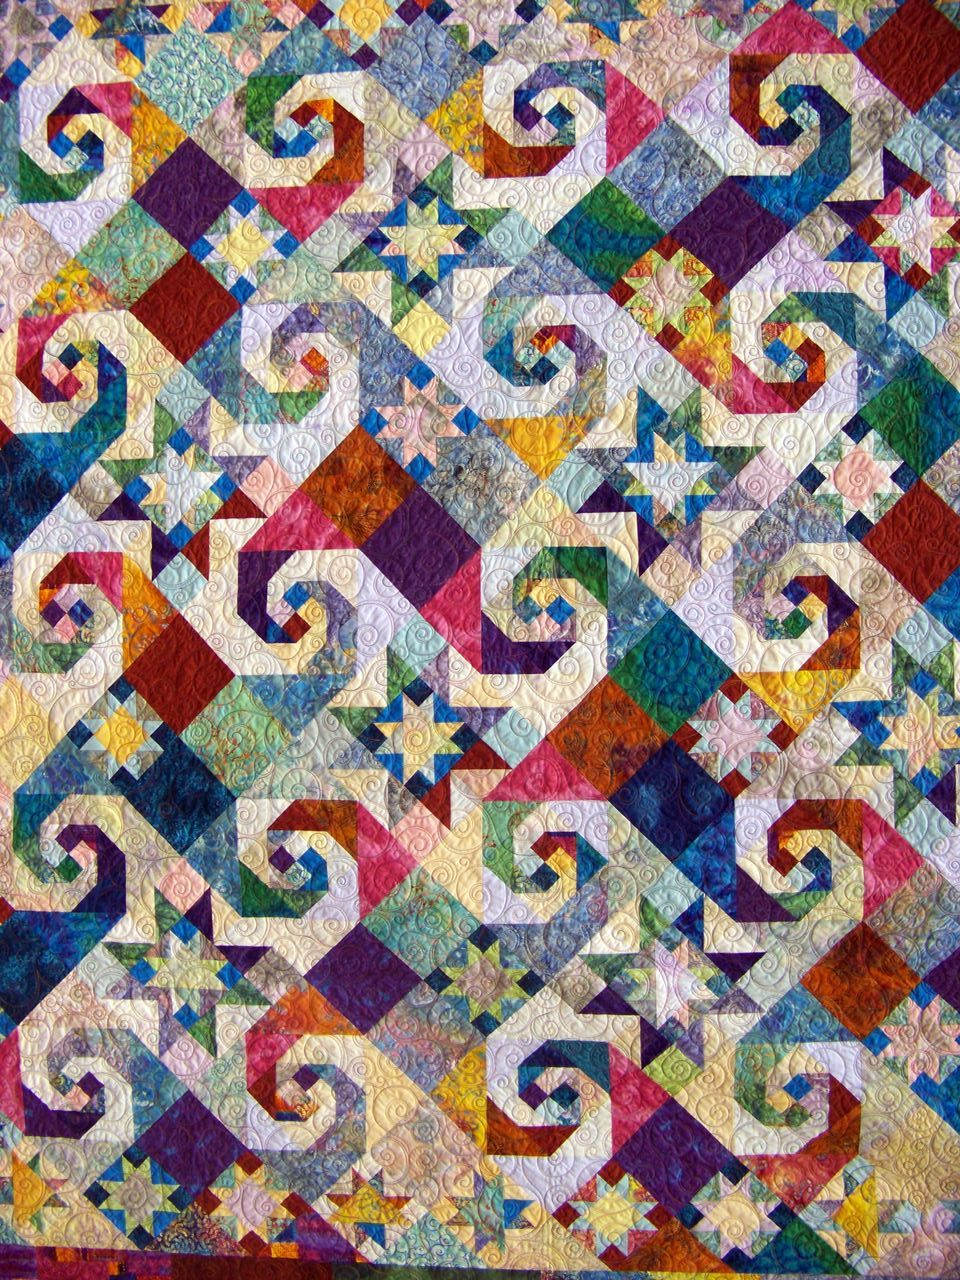 Rising Star And Snail S Trail Combined On A Brightly Colored Quilt Quilts Quilt Patterns Traditional Quilts